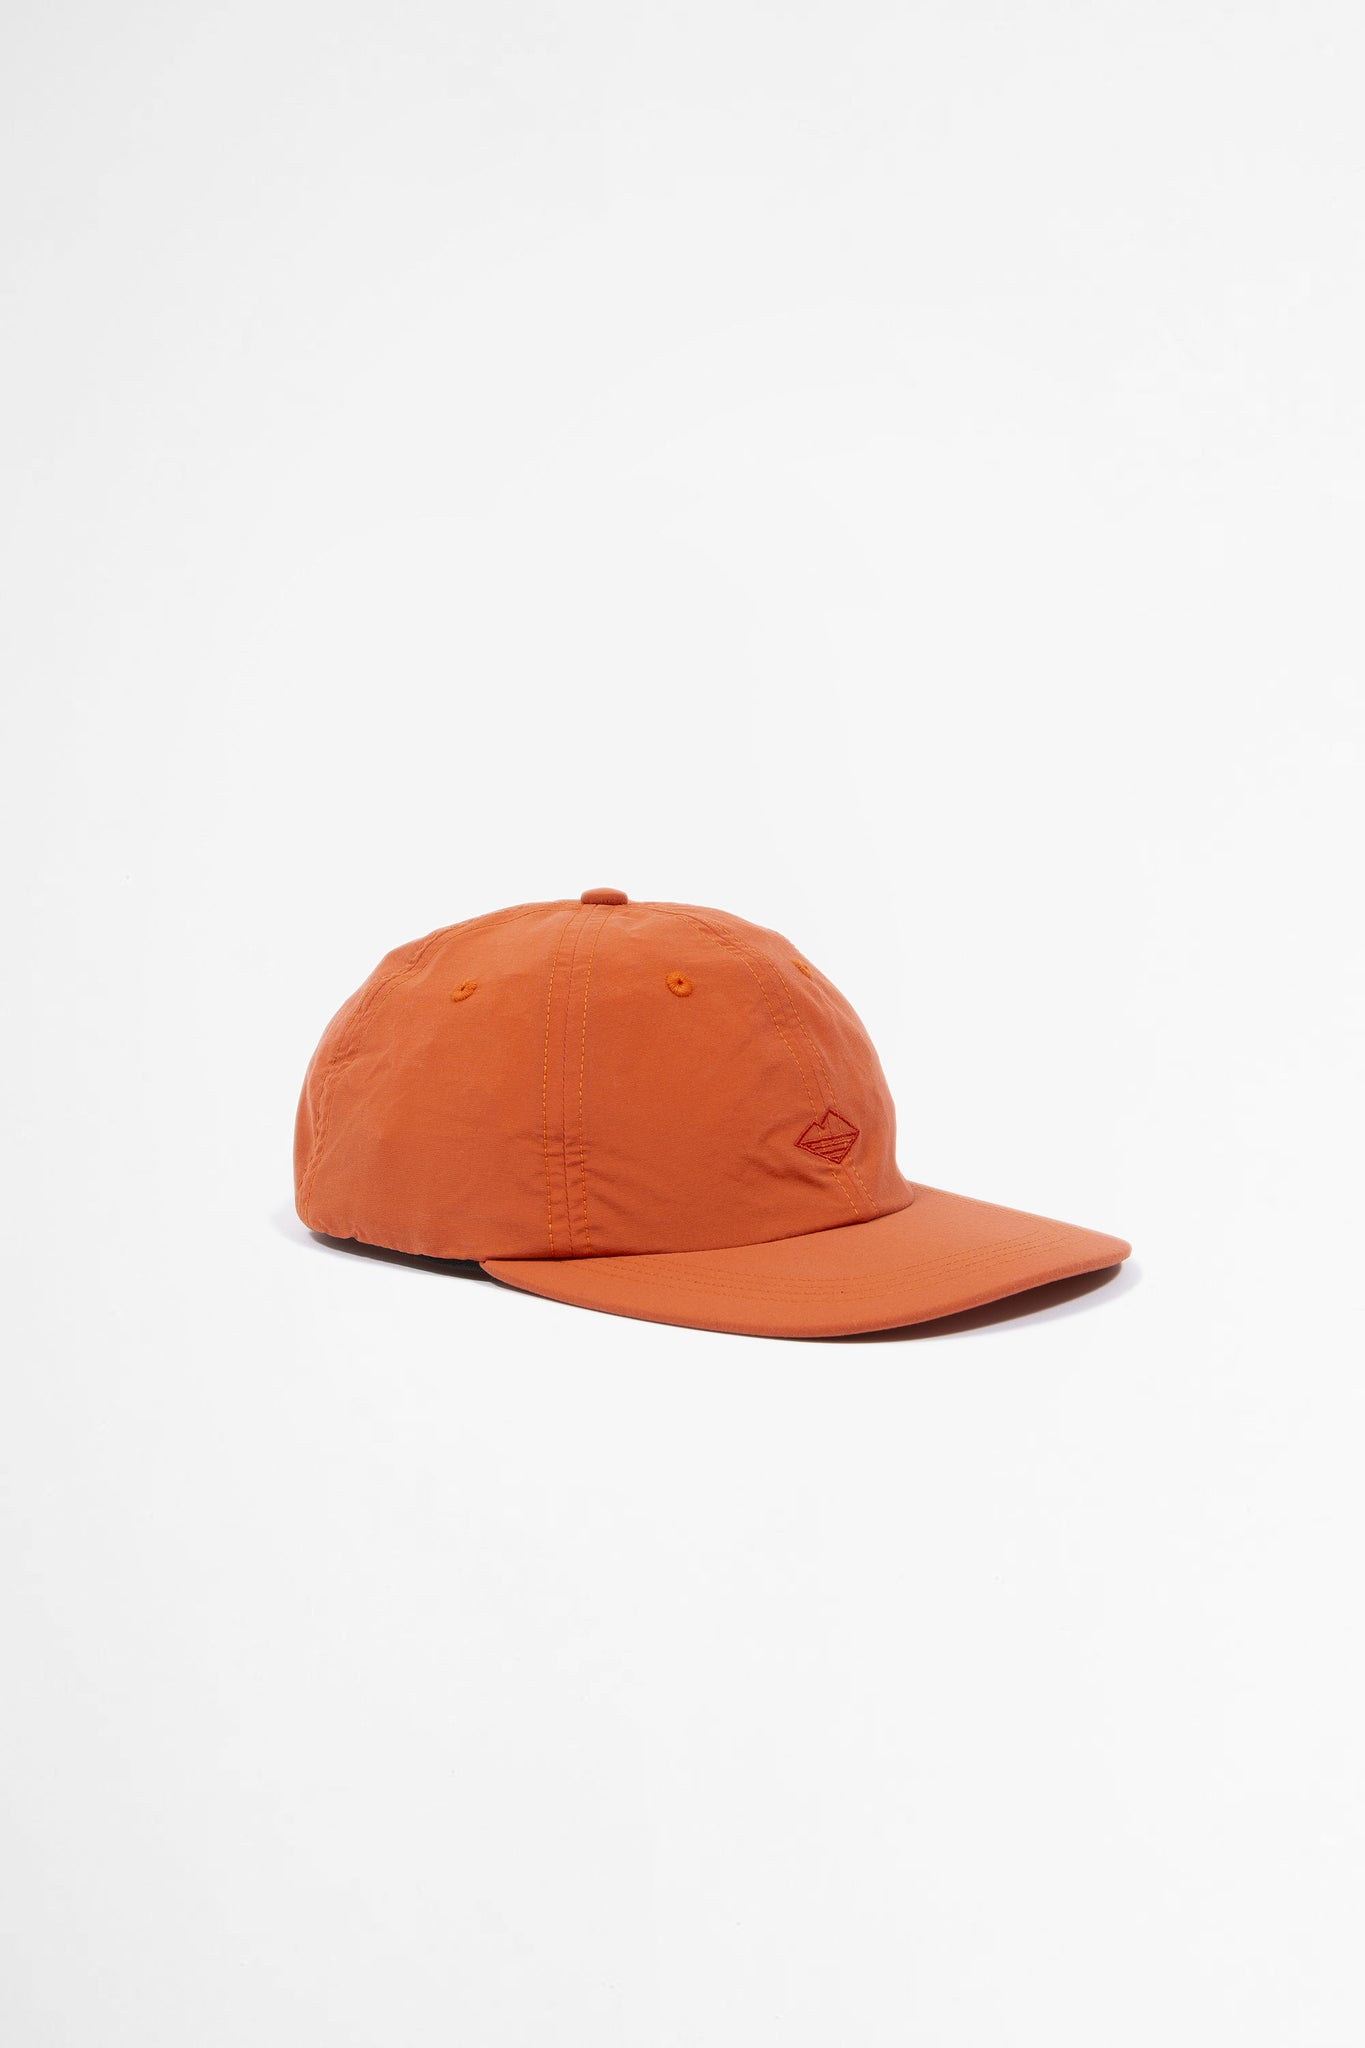 Field cap orange